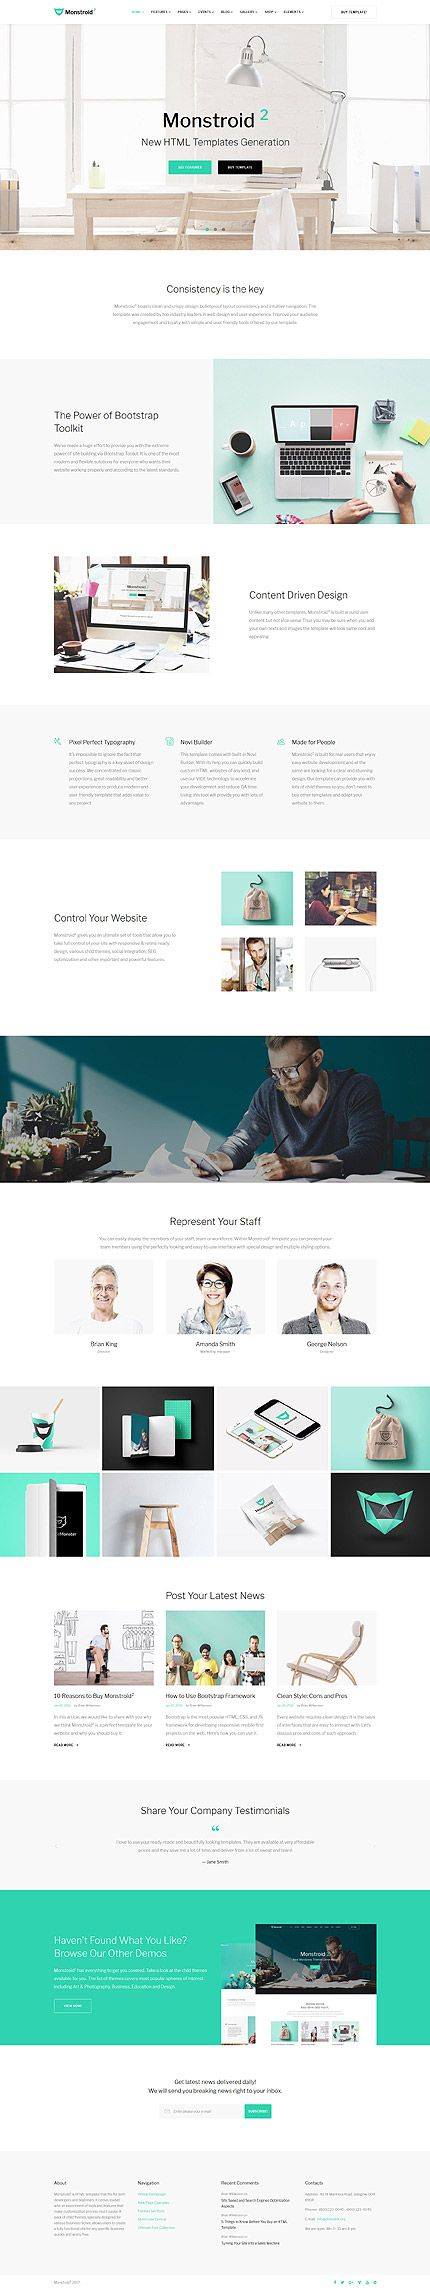 Business website inspirations at your coffee break? Browse for more Bootstrap #templates! // Regular price: $75 // Sources available: .HTML, .PSD #Business #LastAdded #Bootstrap #Monstrold